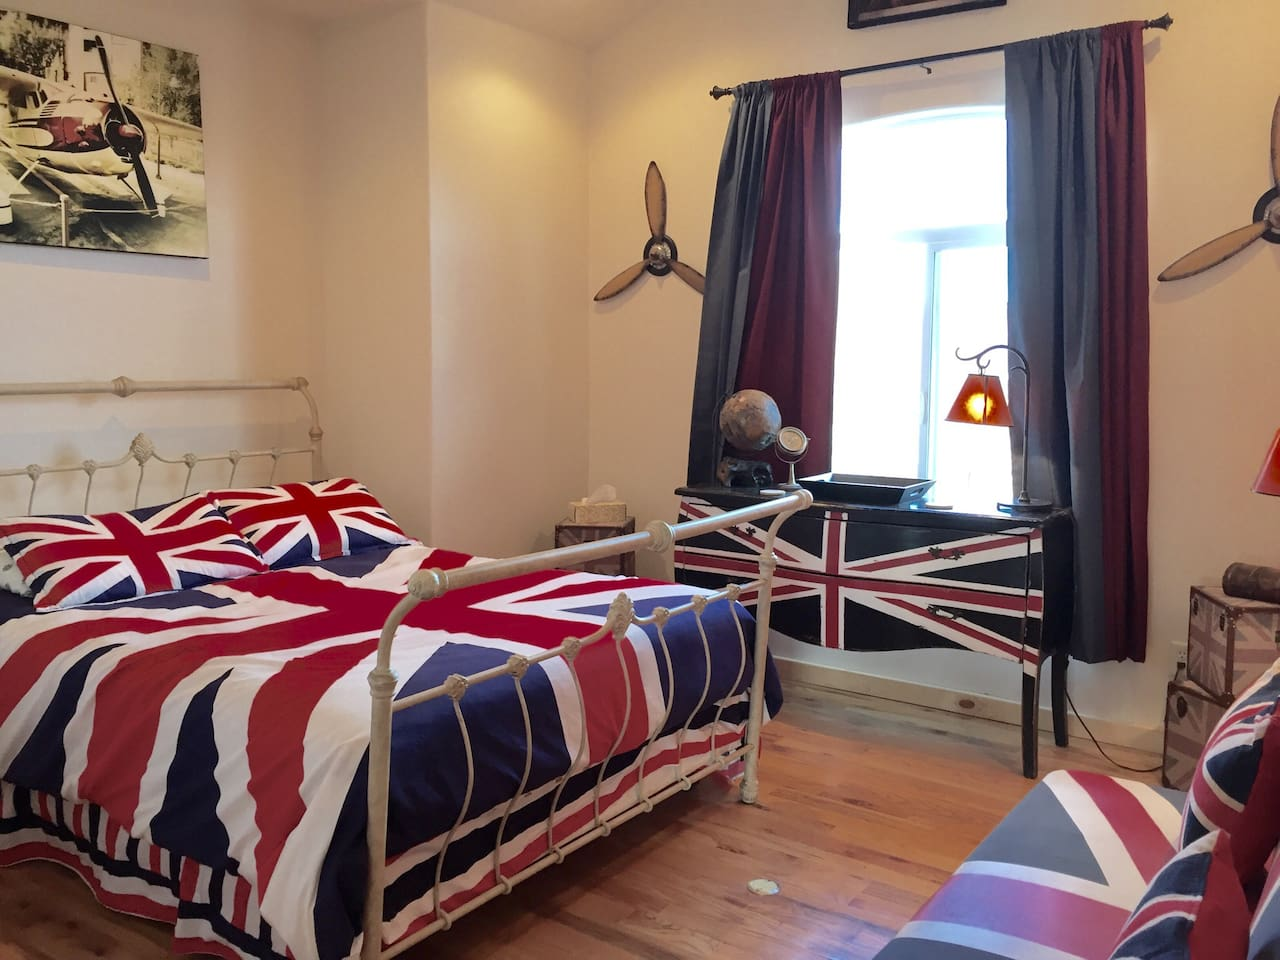 Queen size bed, your own PRIVATE bathroom in hall, upstairs view, ceiling fan, sofa sleeper